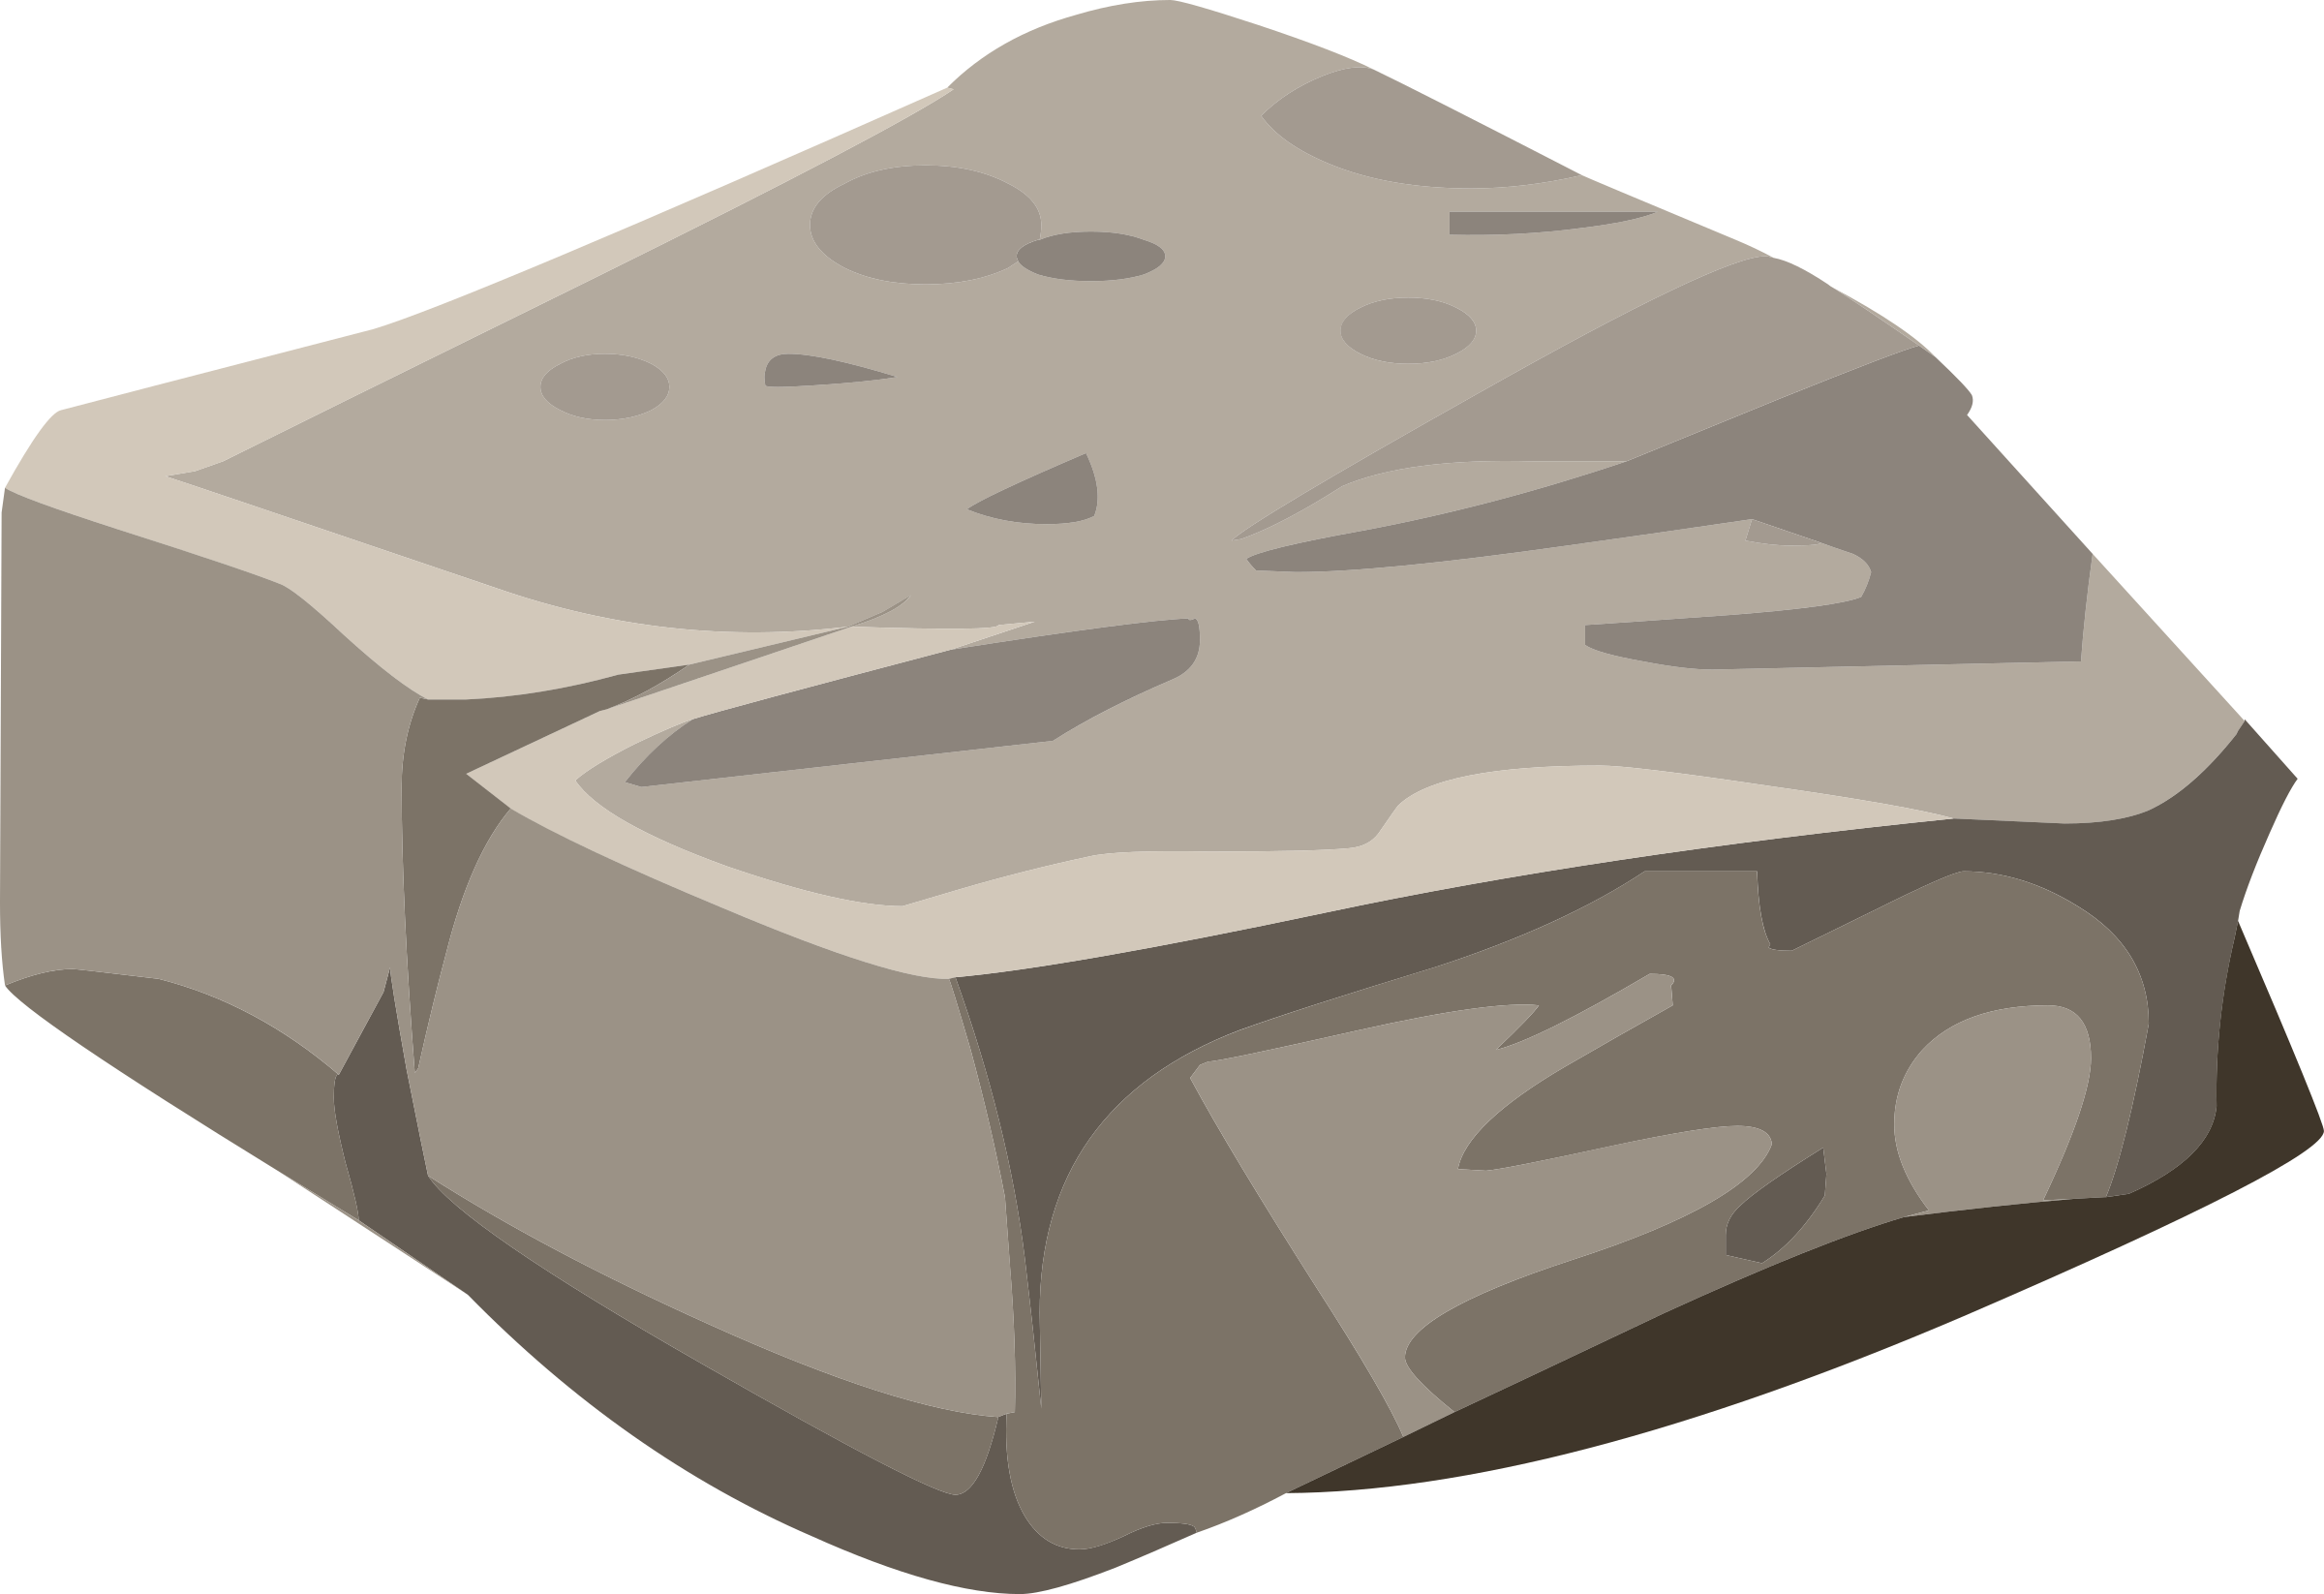 Clip art of a rock.